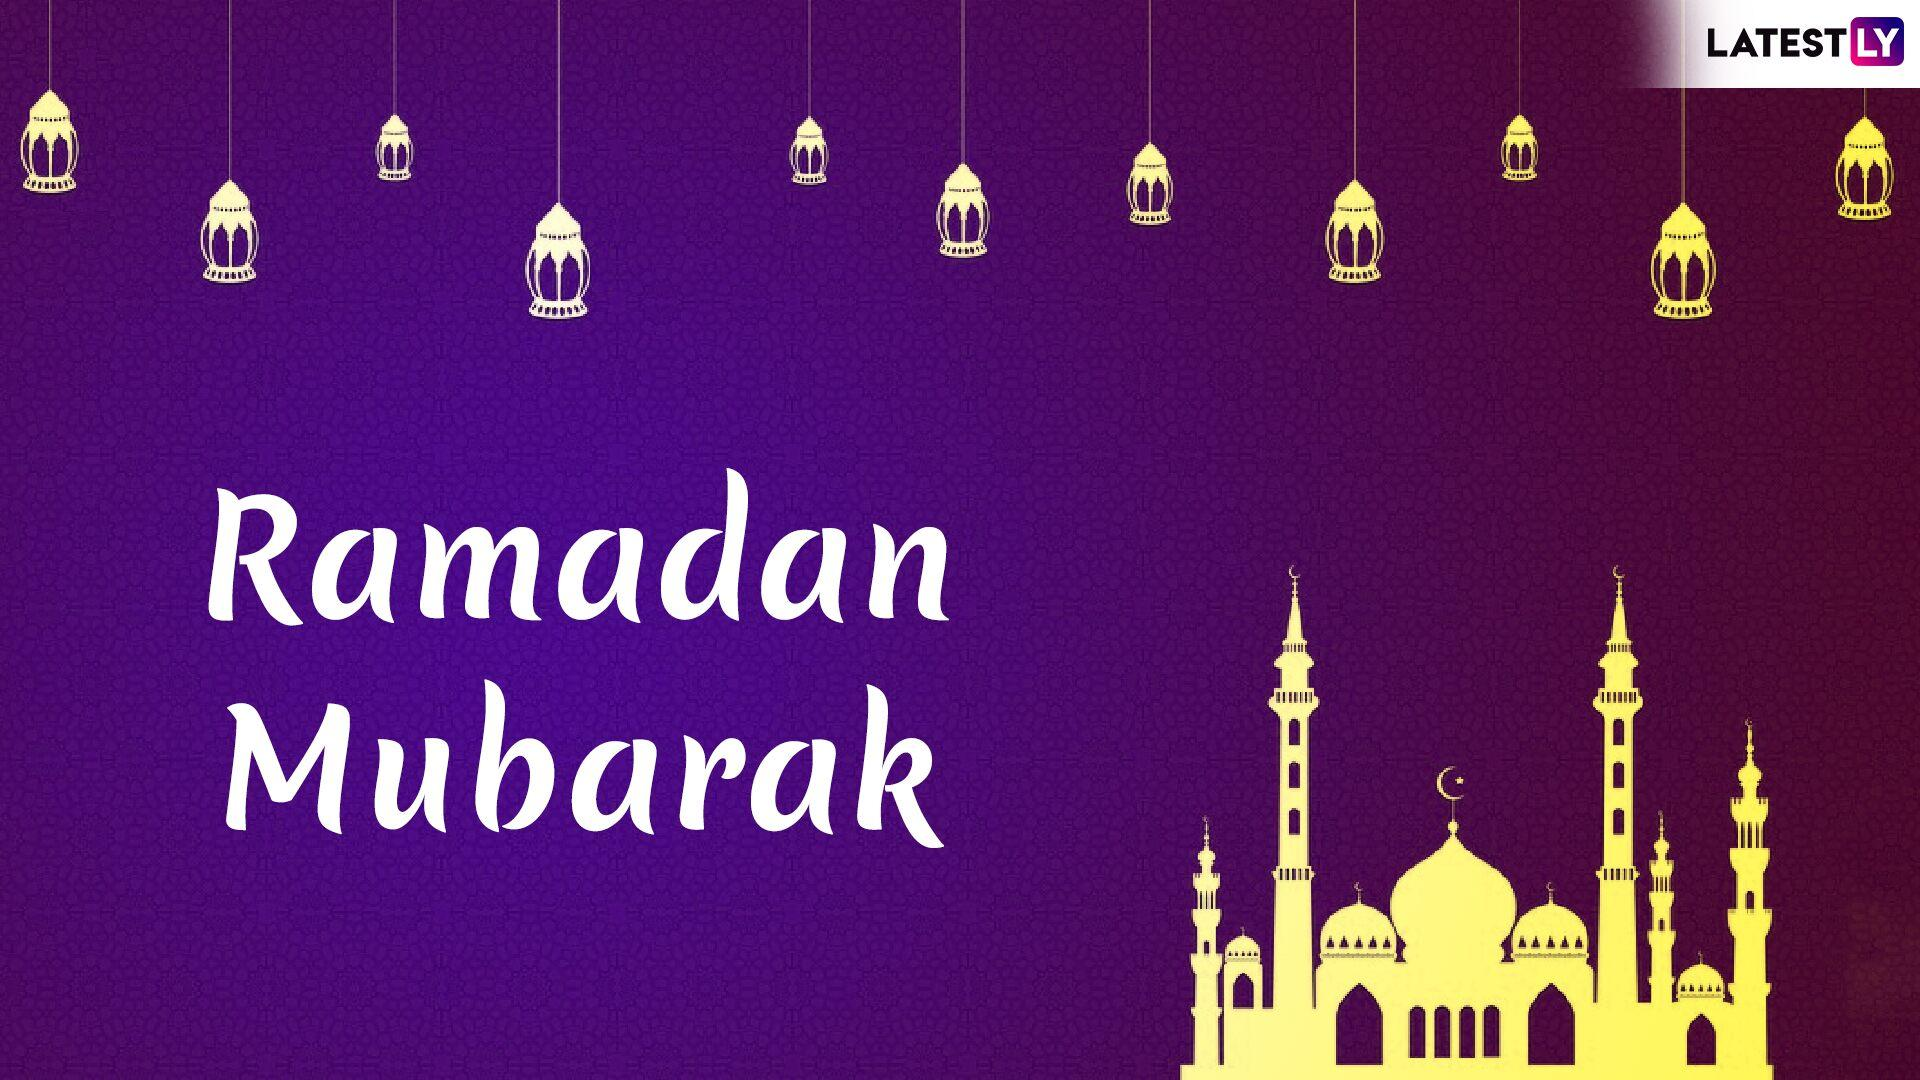 Ramadan Mubarak Image & Ramadan Kareem HD Wallpapers for Free Download Online: Wish Ramzan Mubarak 2019 With GIF Greetings & Urdu WhatsApp Sticker Messages